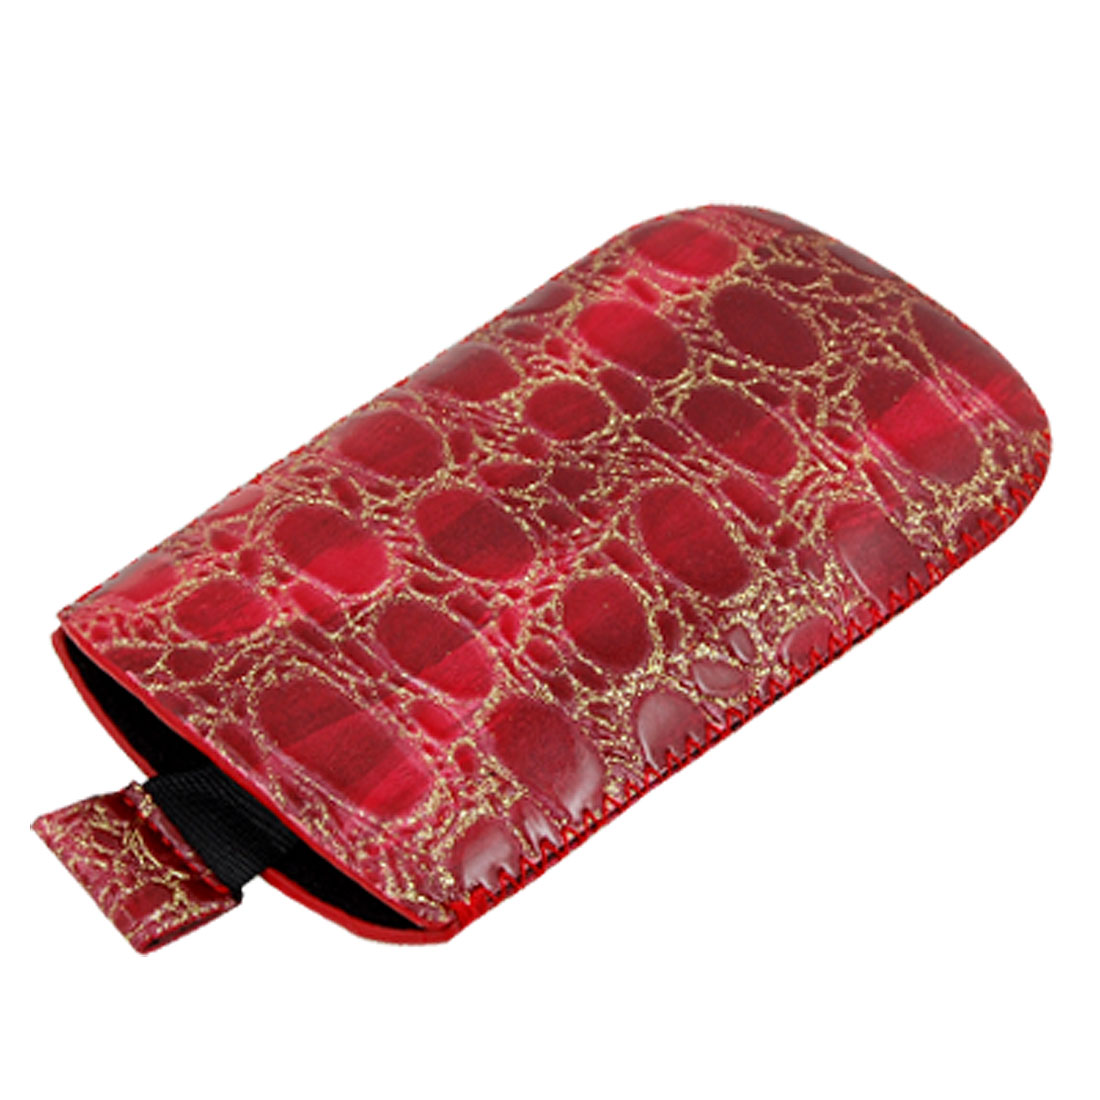 Glittery Faux Leather Snakeskin Style Dark Red Pulling Case for Nokia 5800